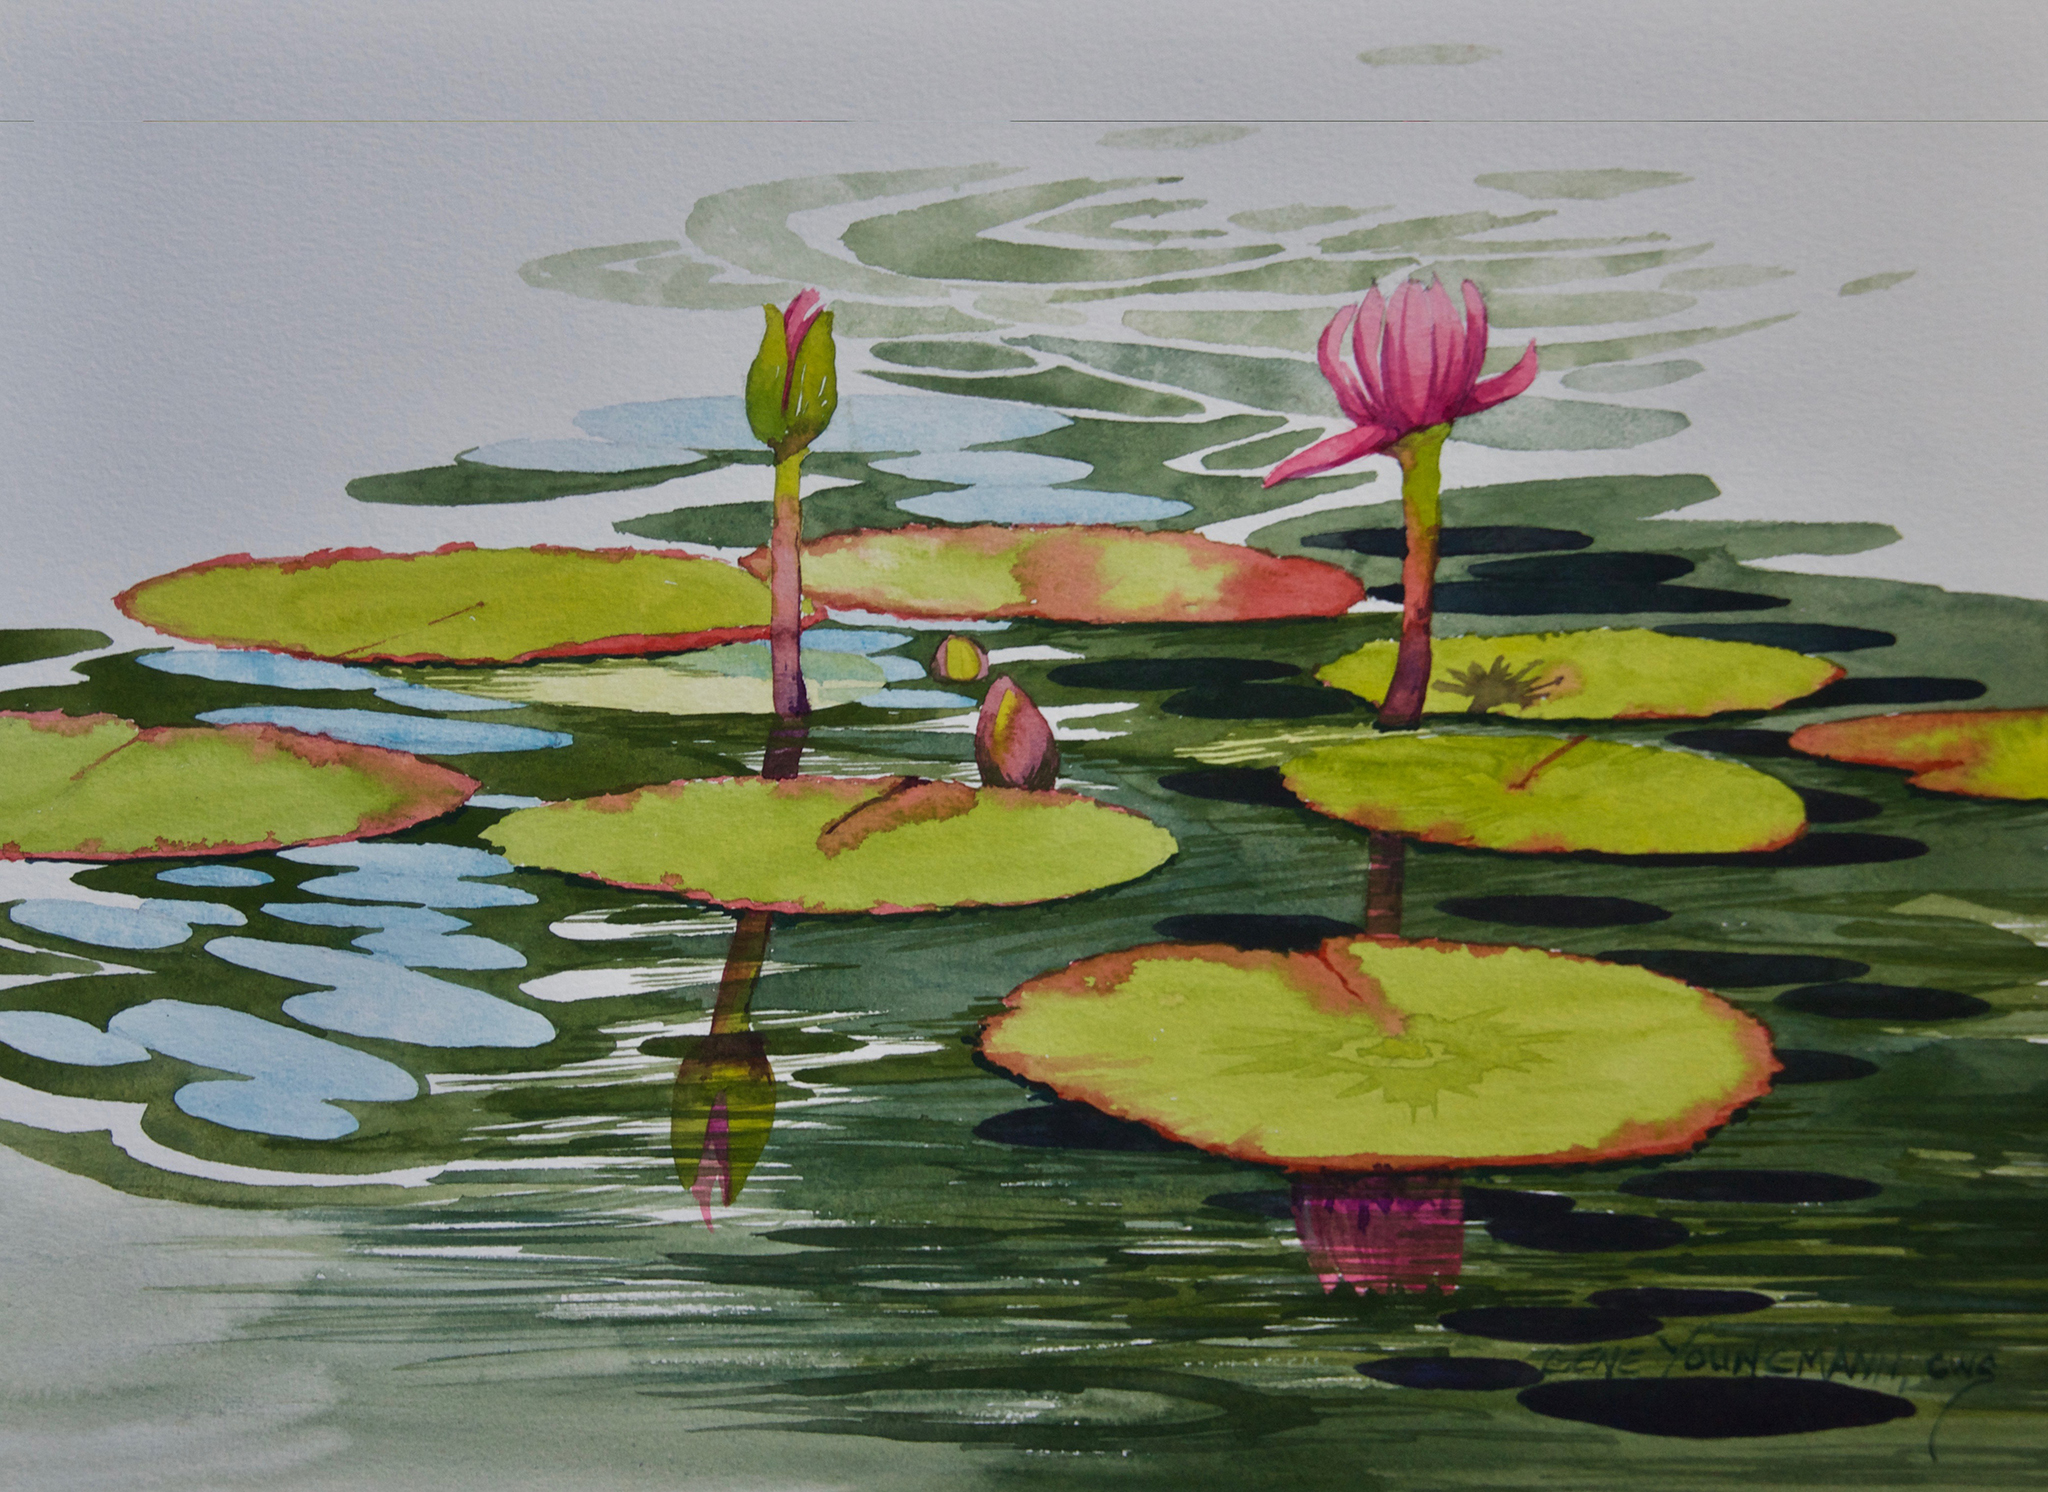 Between the Lily Pads